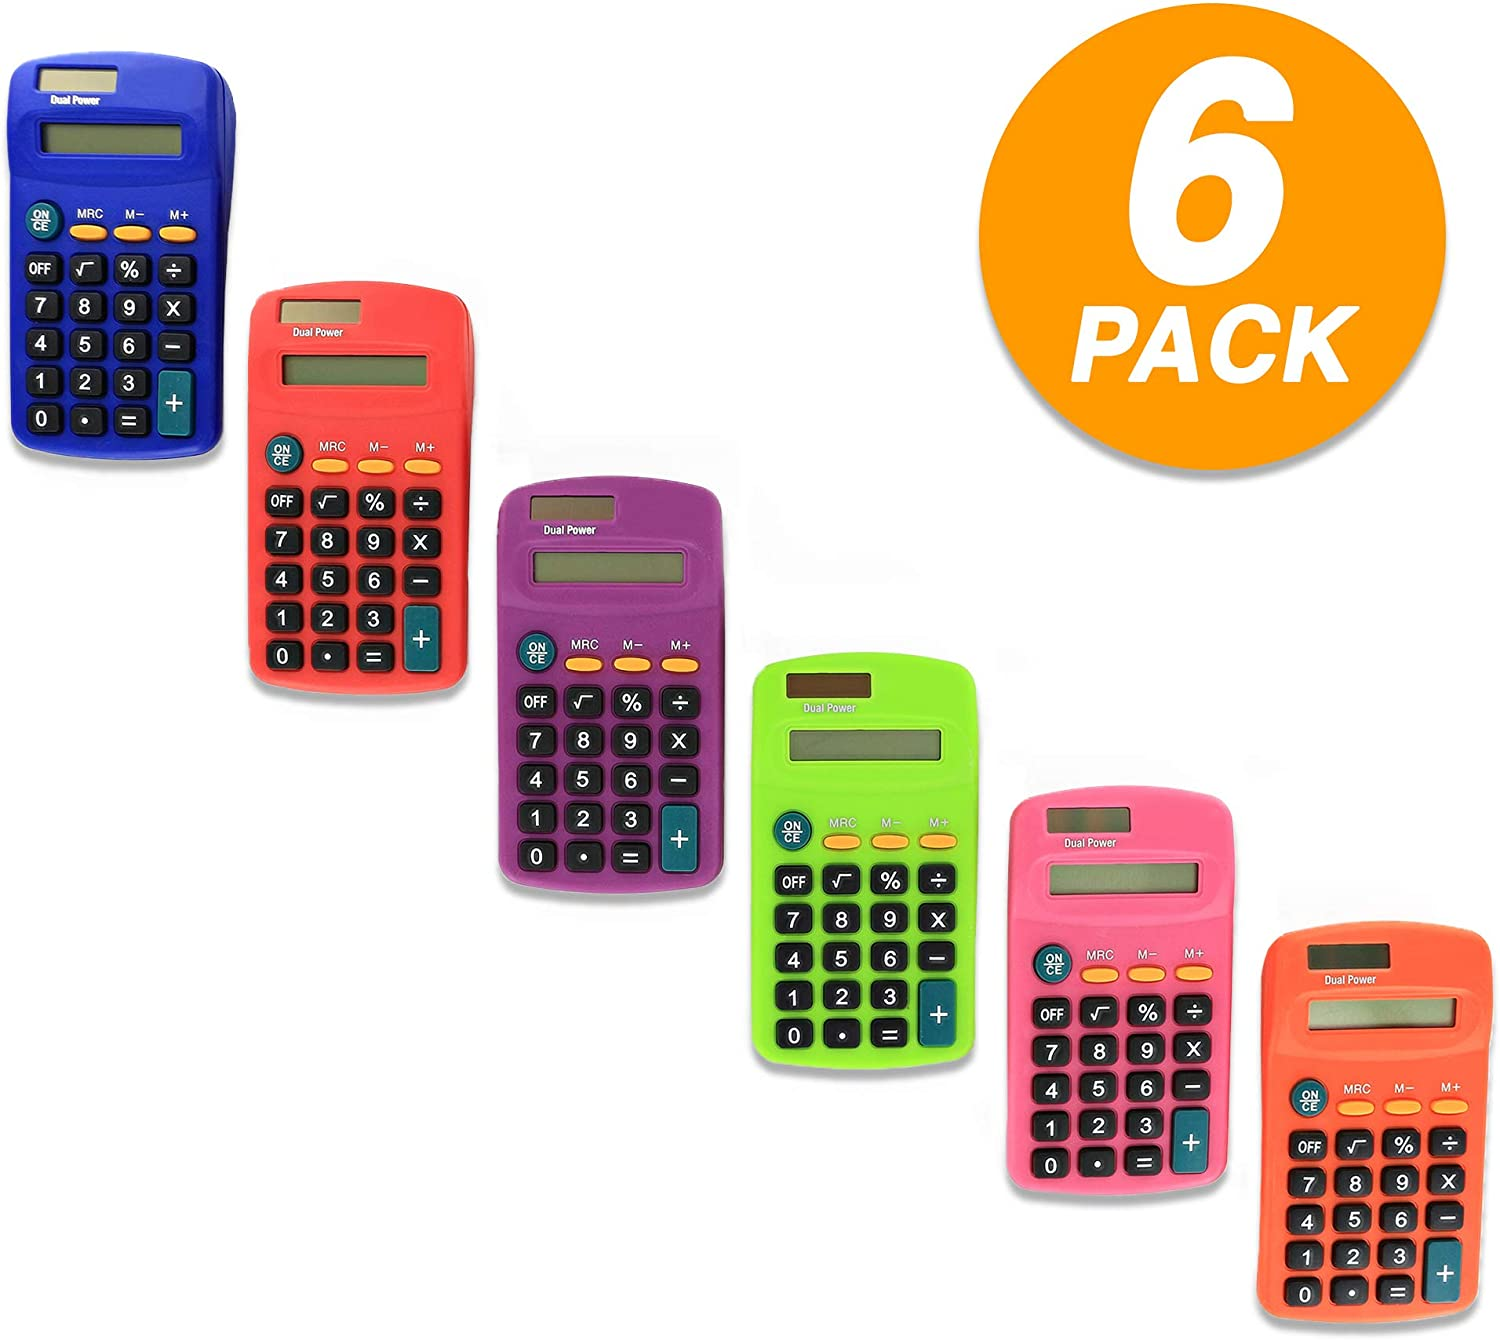 Pocket Size Calculator 8 Digit, Dual Power, Large LCD Display, School Student Desktop Accounting Office Calculators (Pack of 6) - by Emraw